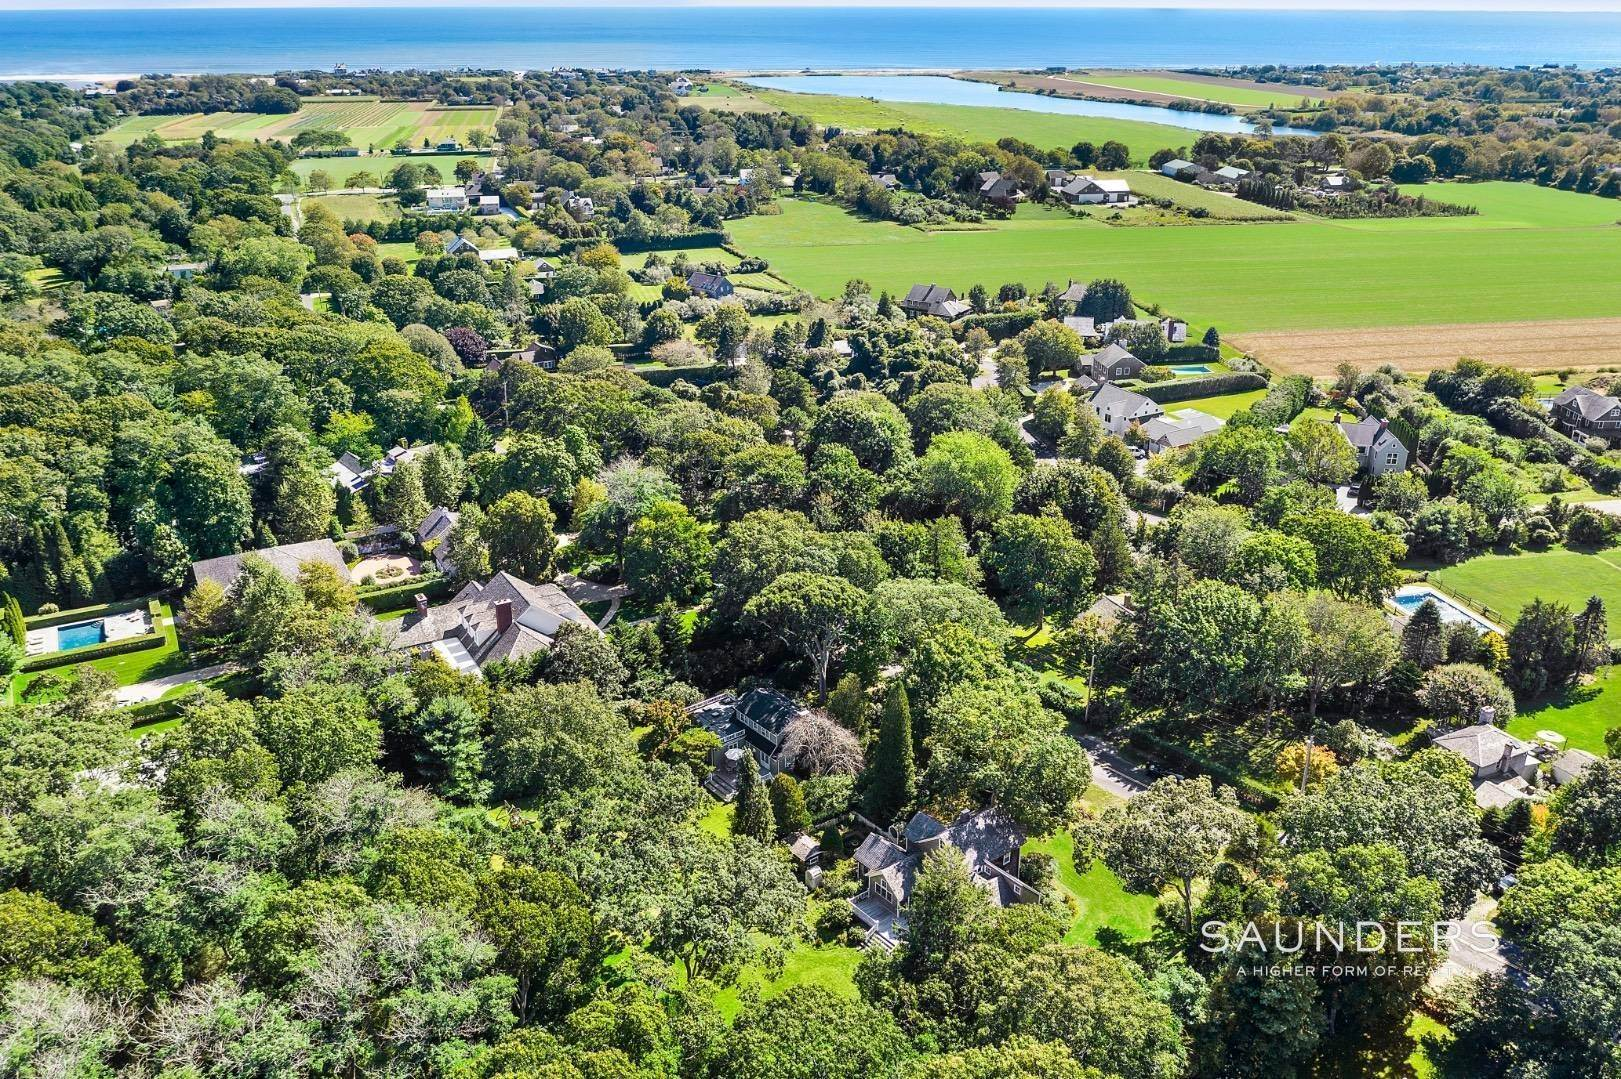 3. Single Family Homes for Sale at Sayres Path 3 Acre Opportunity 129 & 133 Sayres Path, Wainscott, East Hampton Town, NY 11975